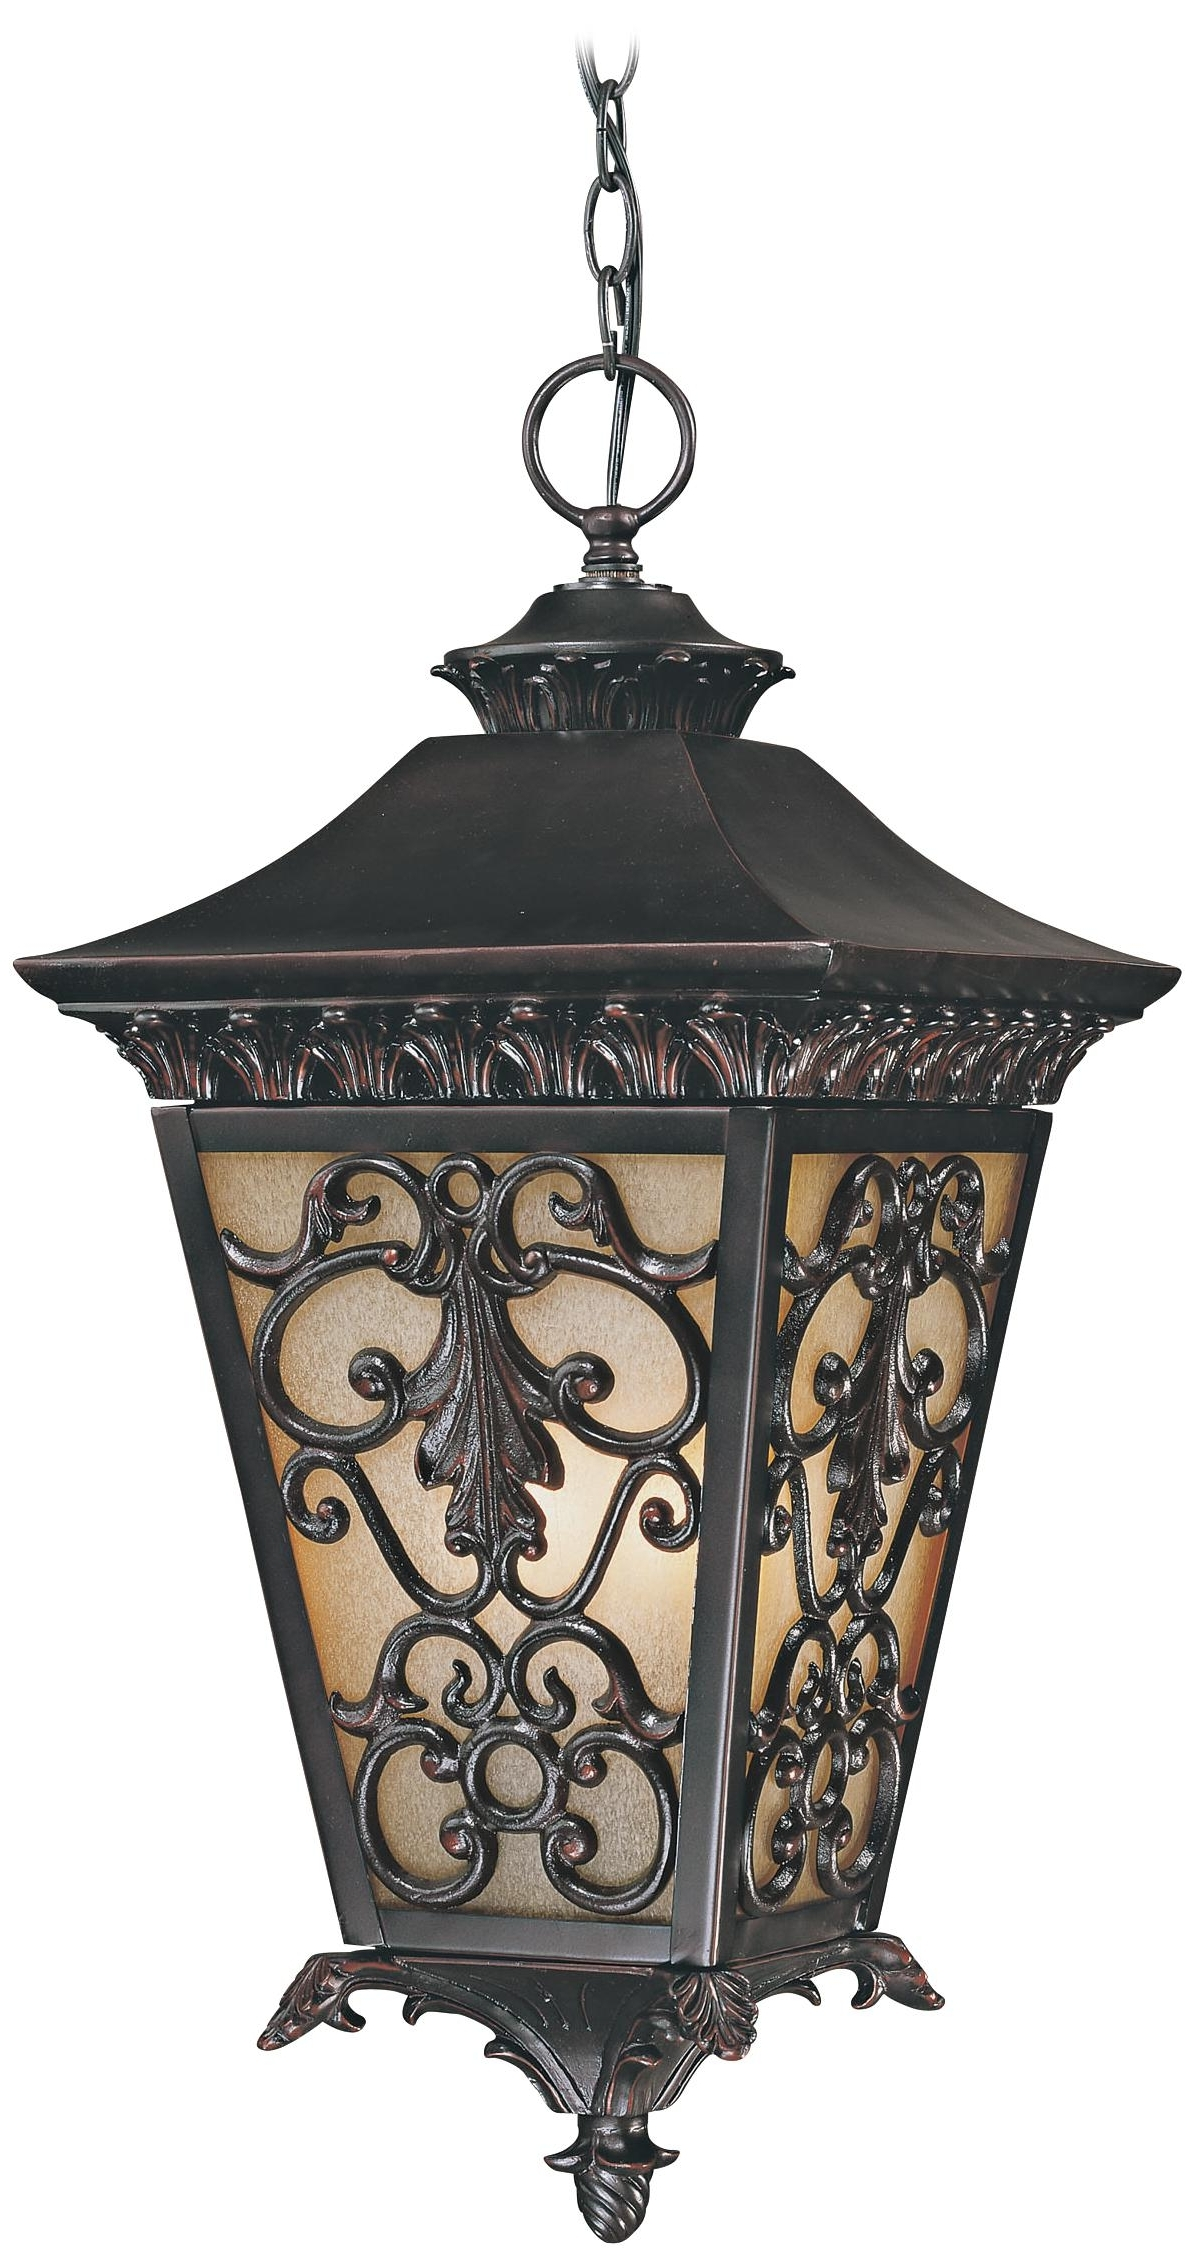 Outdoor Hanging Lights Regarding Most Current Bientina Collection 23 1/4 High Outdoor Hanging Light – (View 12 of 20)